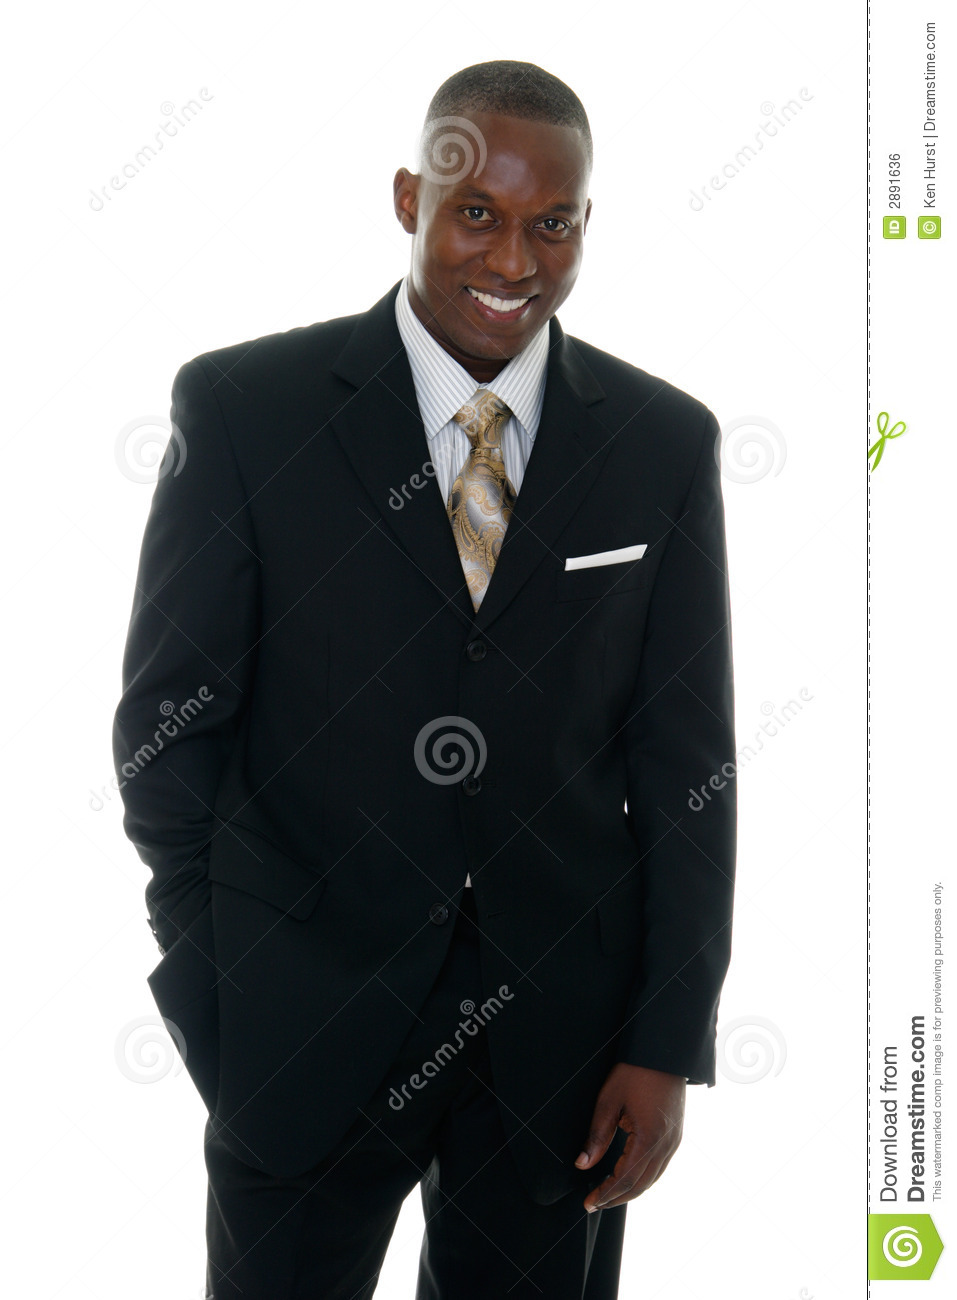 Business Man In Black Suit 3 Royalty Free Stock Image - Image: 2891636